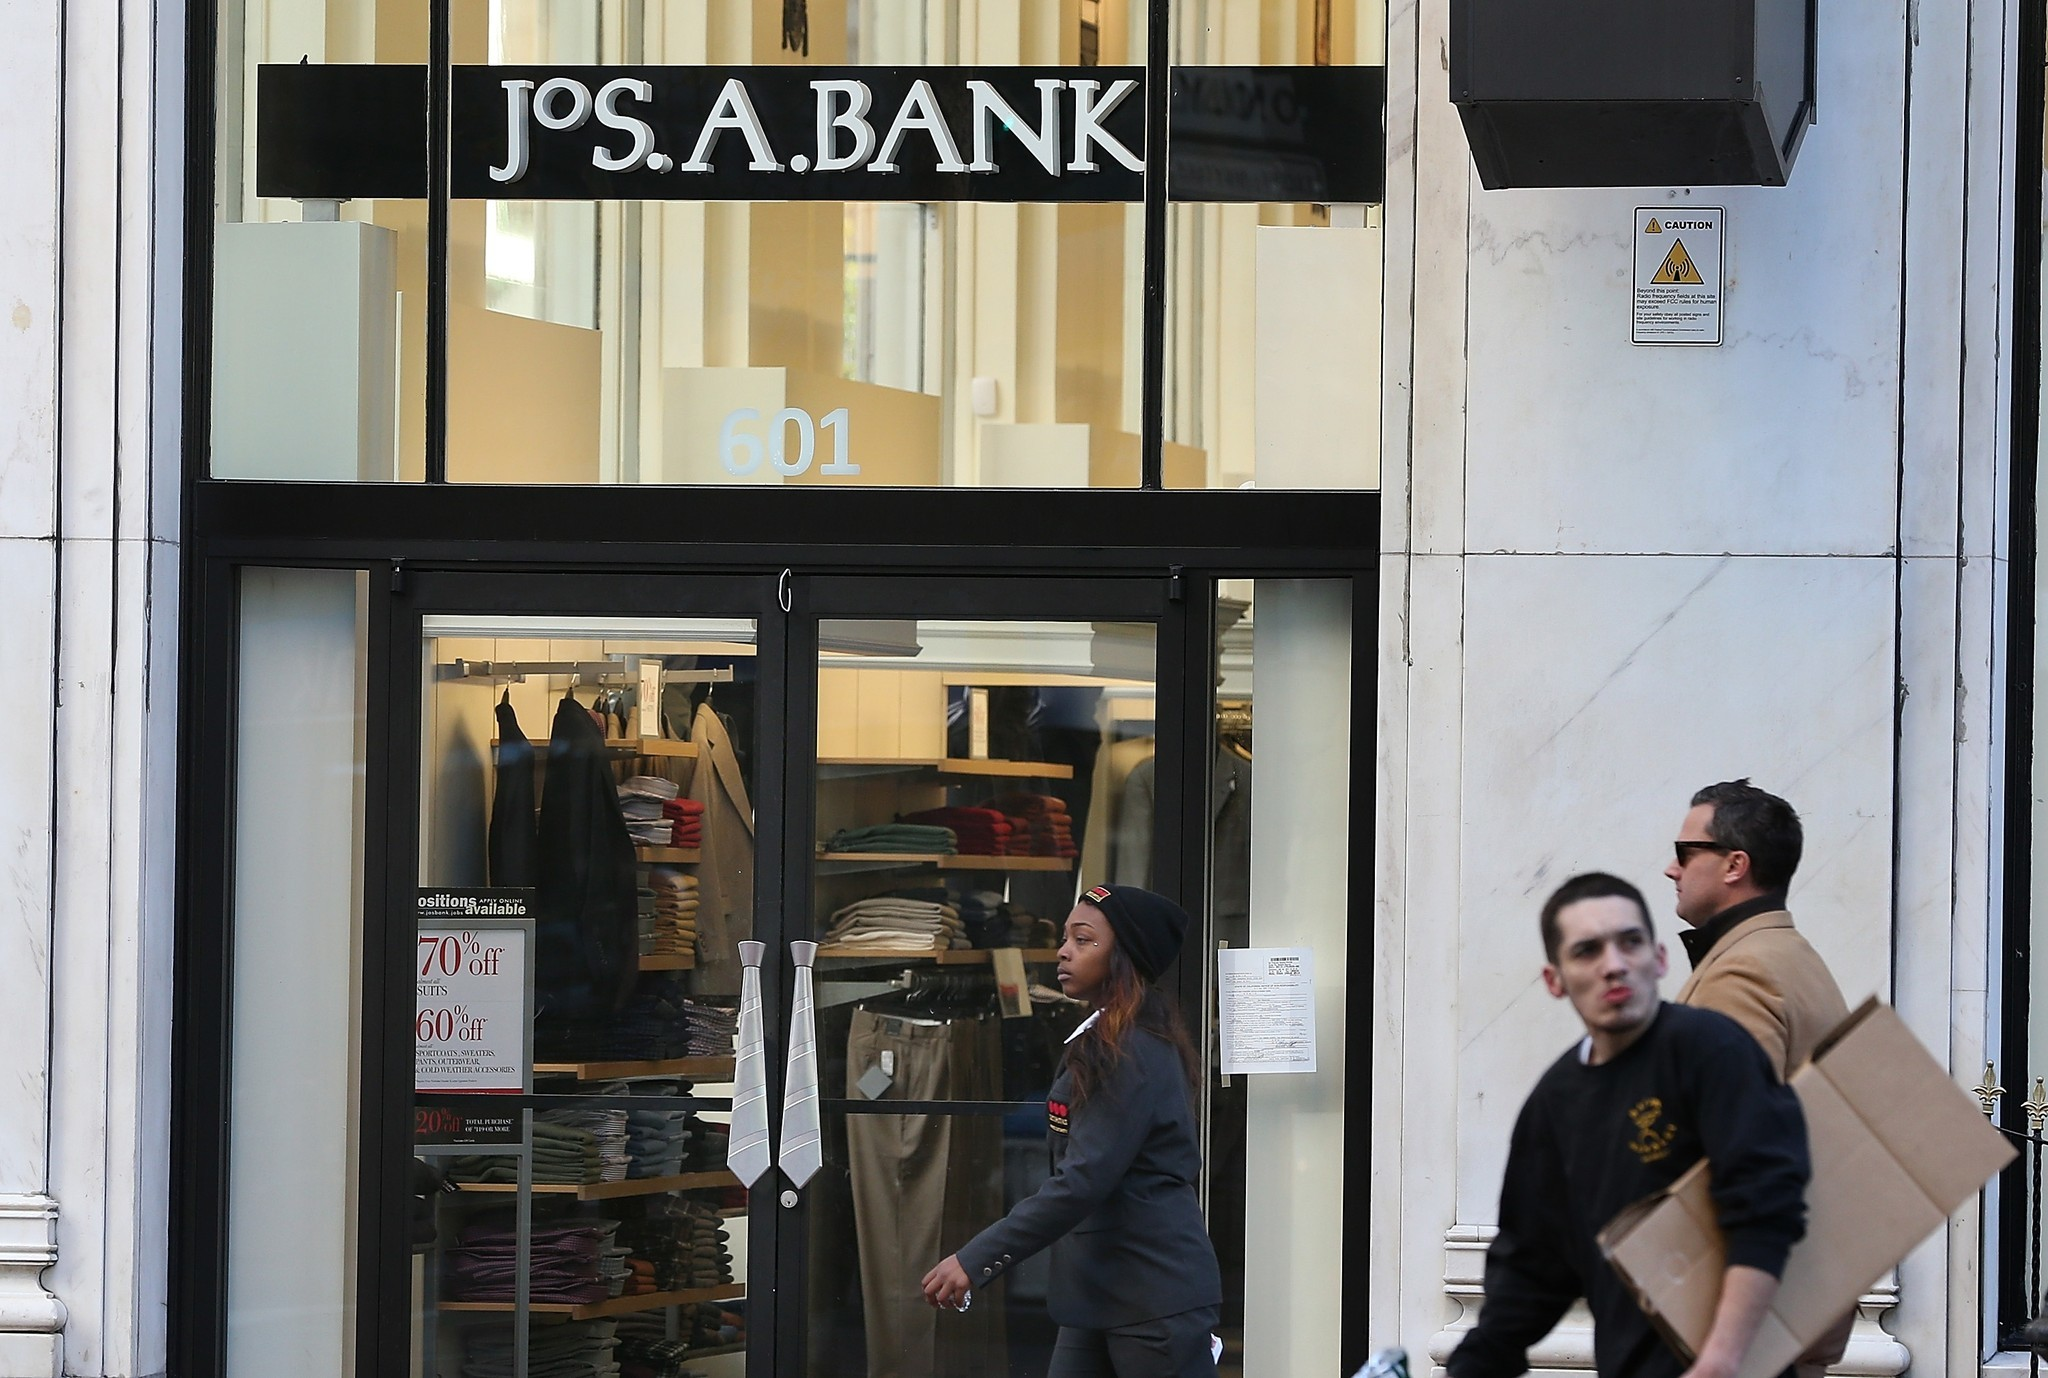 Jos. A. Bank's buyer fumbled the acquisition but aims for ... Joseph A Bank